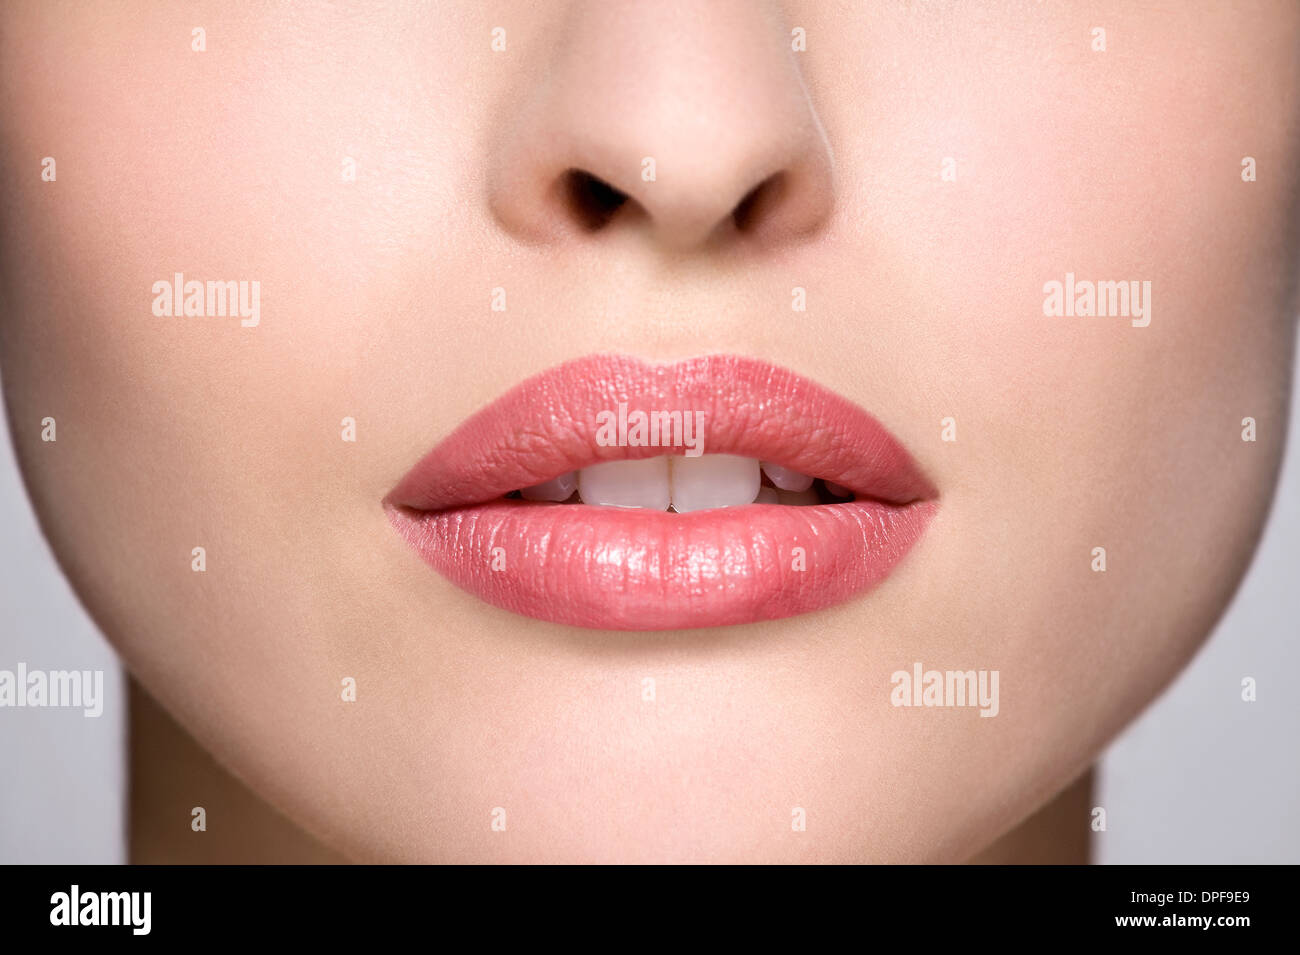 Cropped studio shot of young woman's mouth - Stock Image